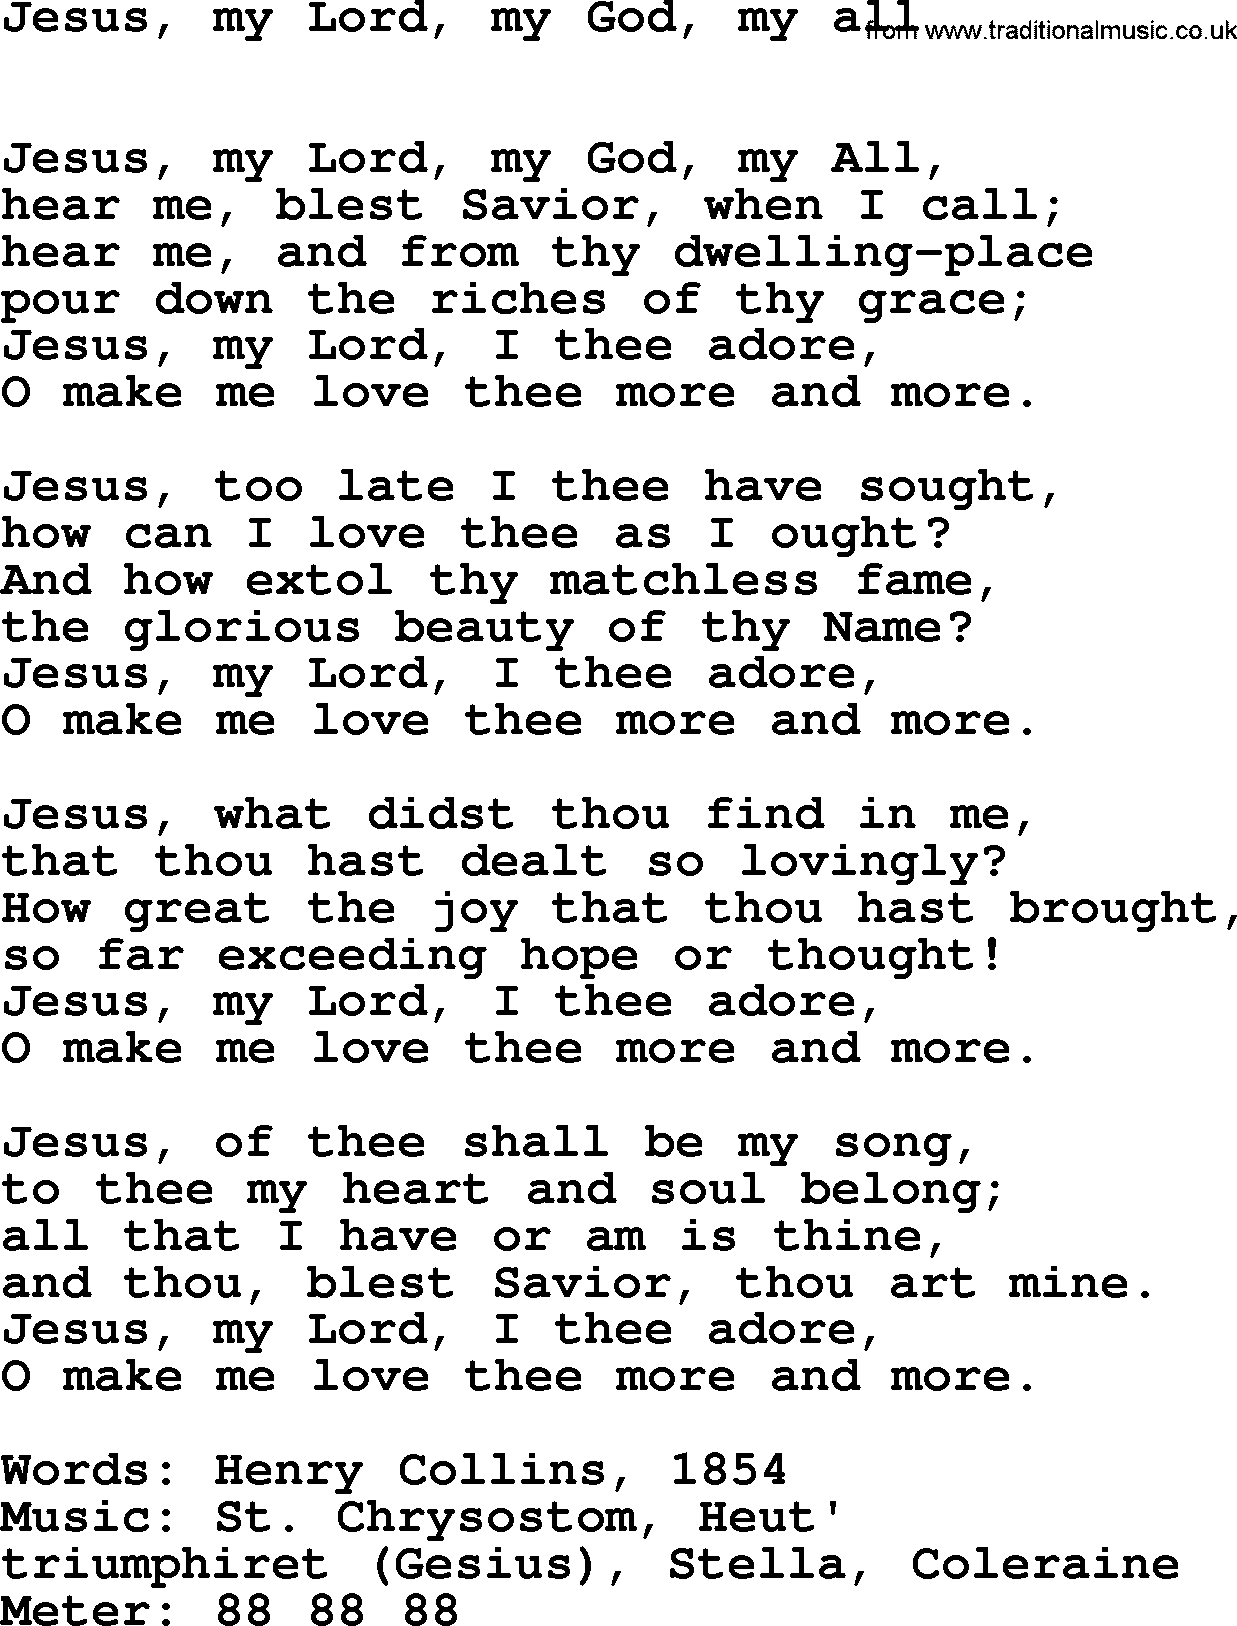 Easter Hymns Song Jesus My Lord My God My All Lyrics Midi Music And Pdf